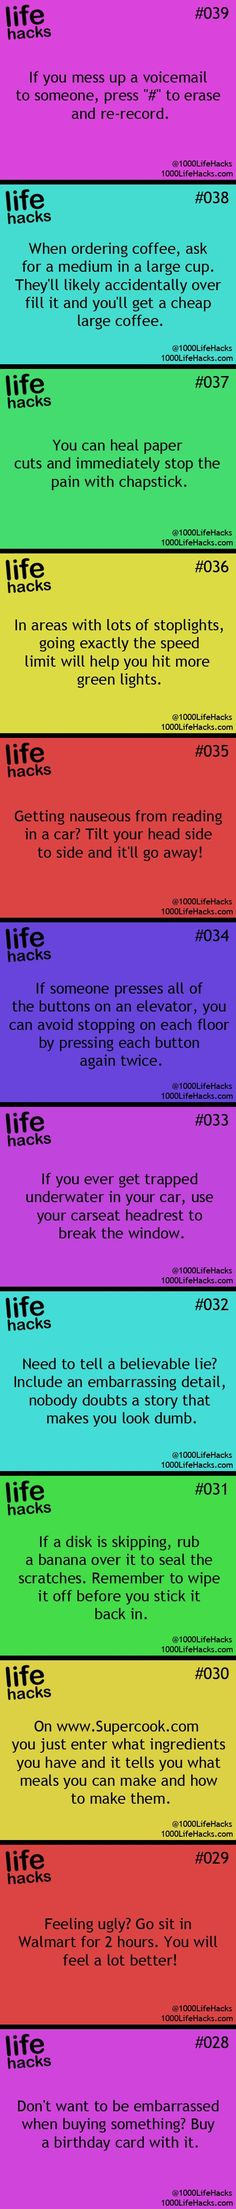 25 Useful Life Hacks… haha these are funny and mayhap useful